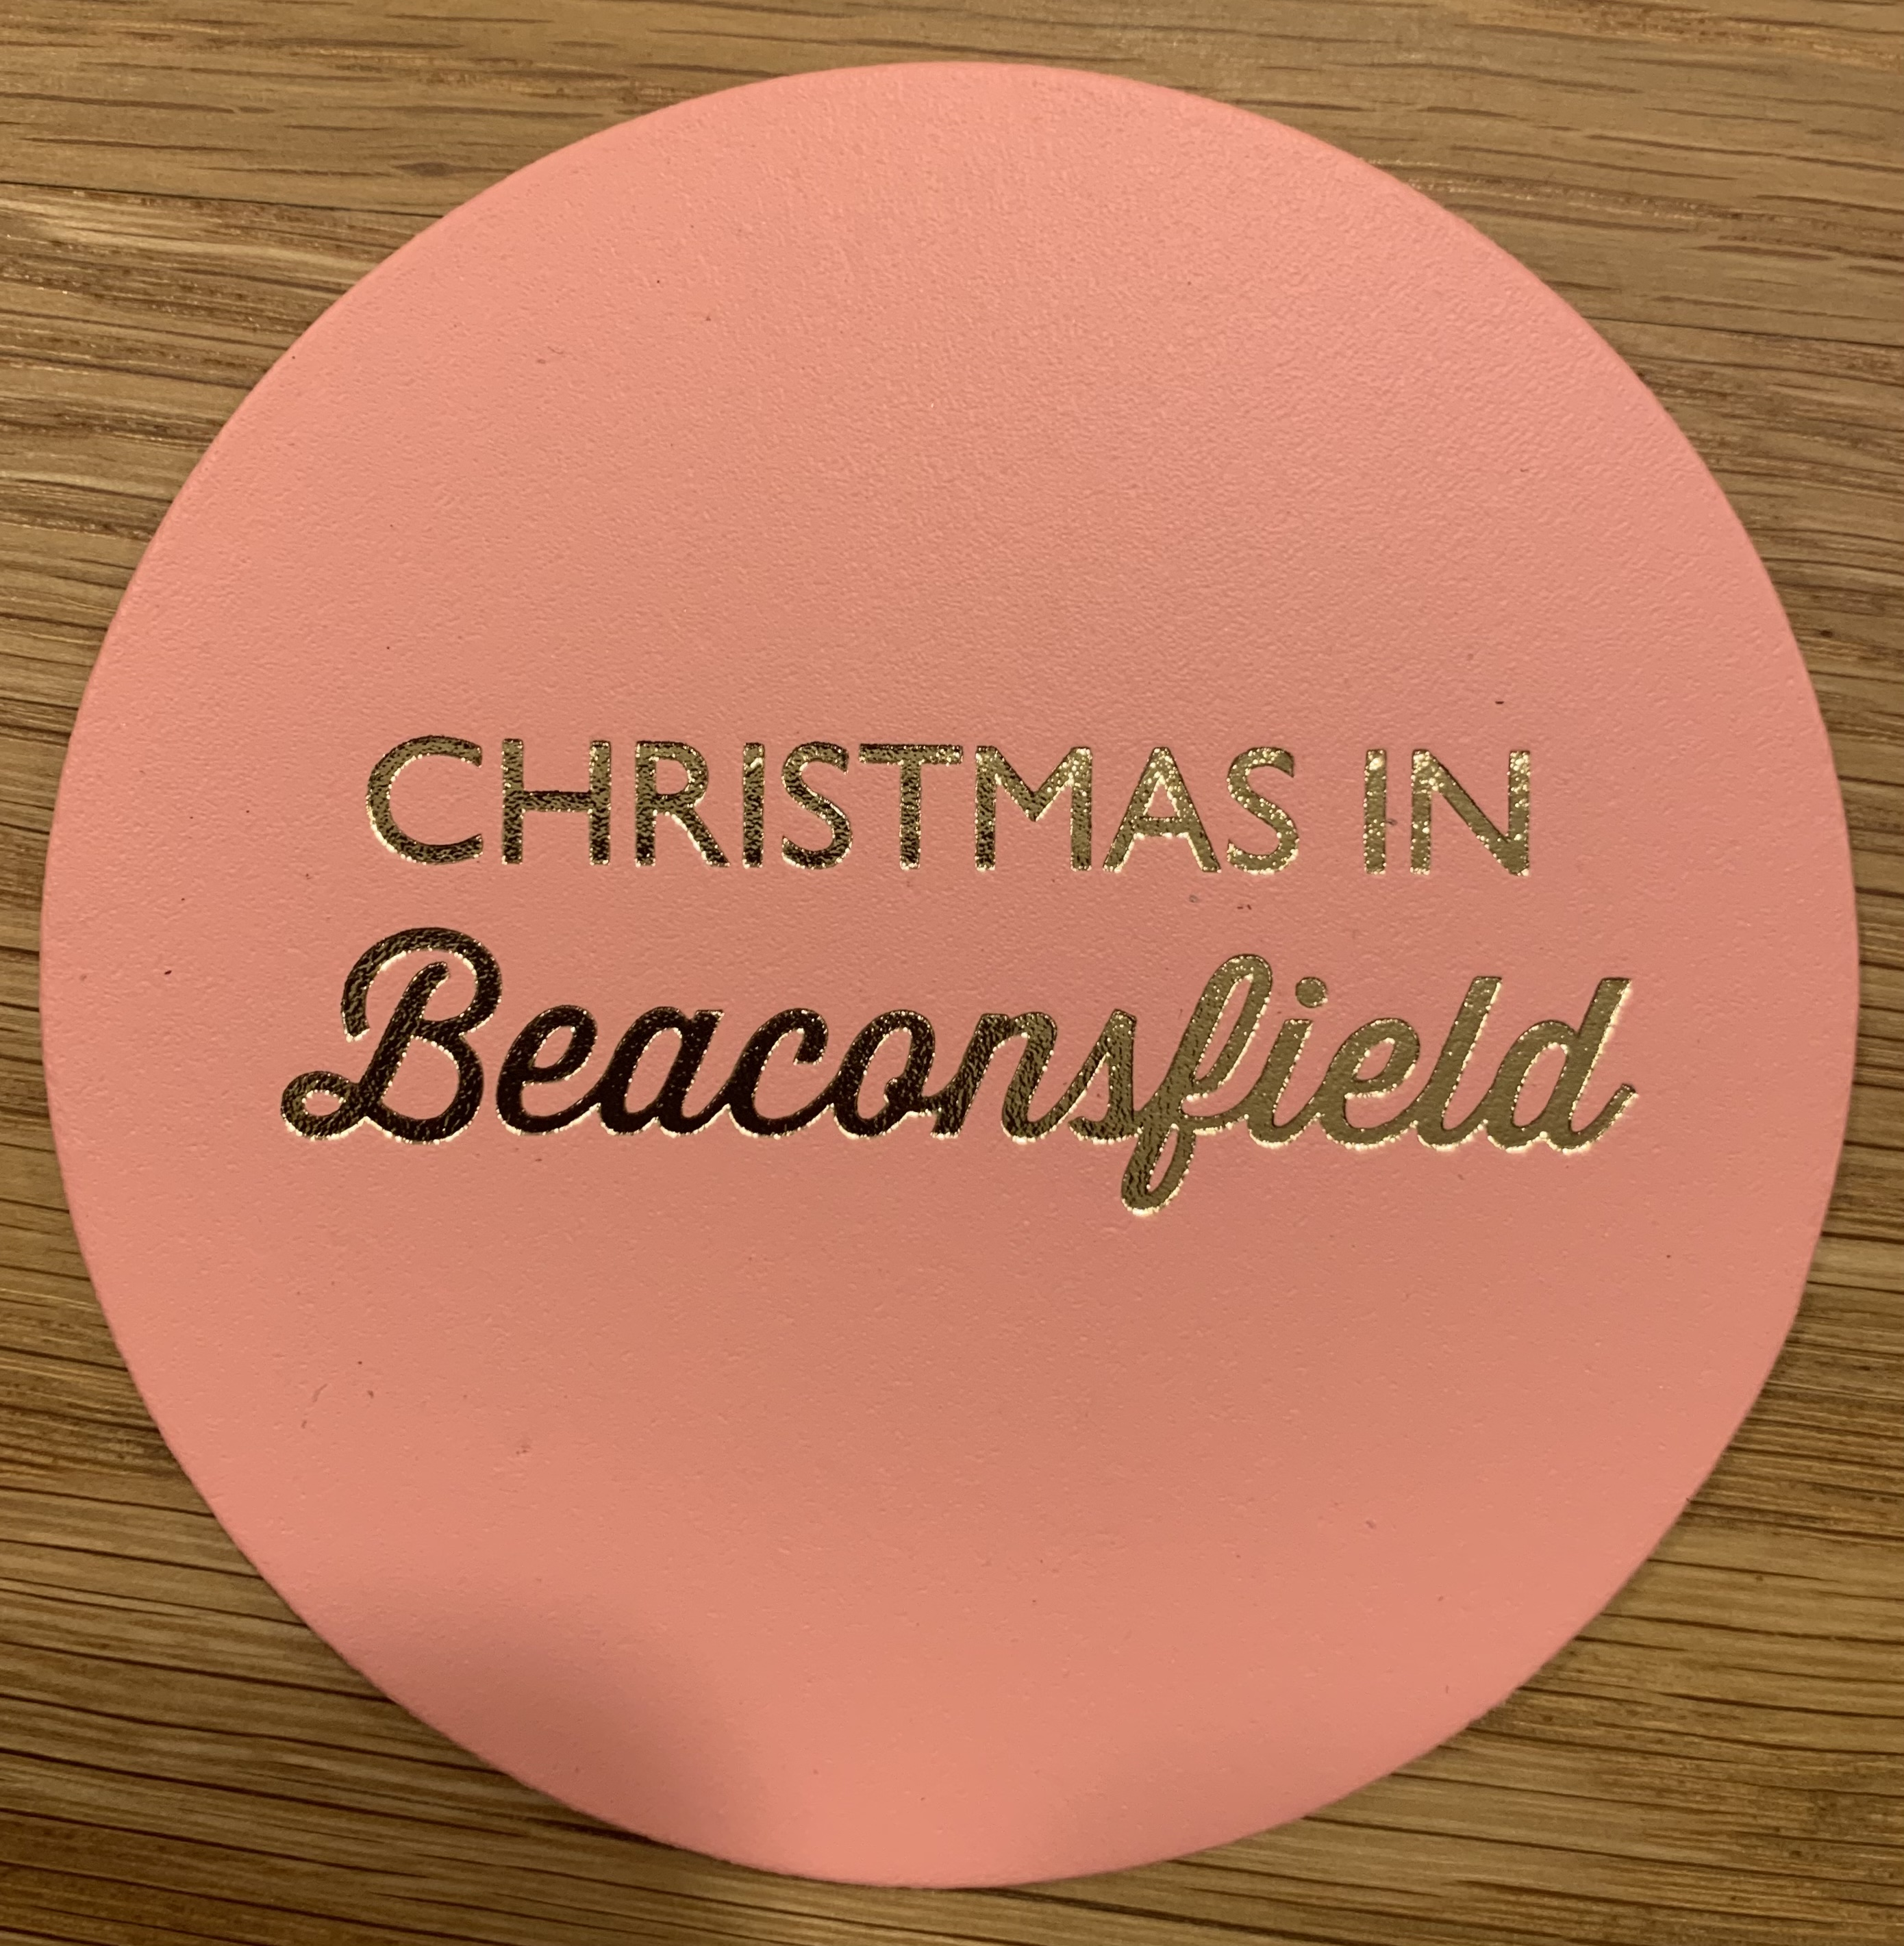 Leather Coaster - Christmas in Beaconsfield Pink